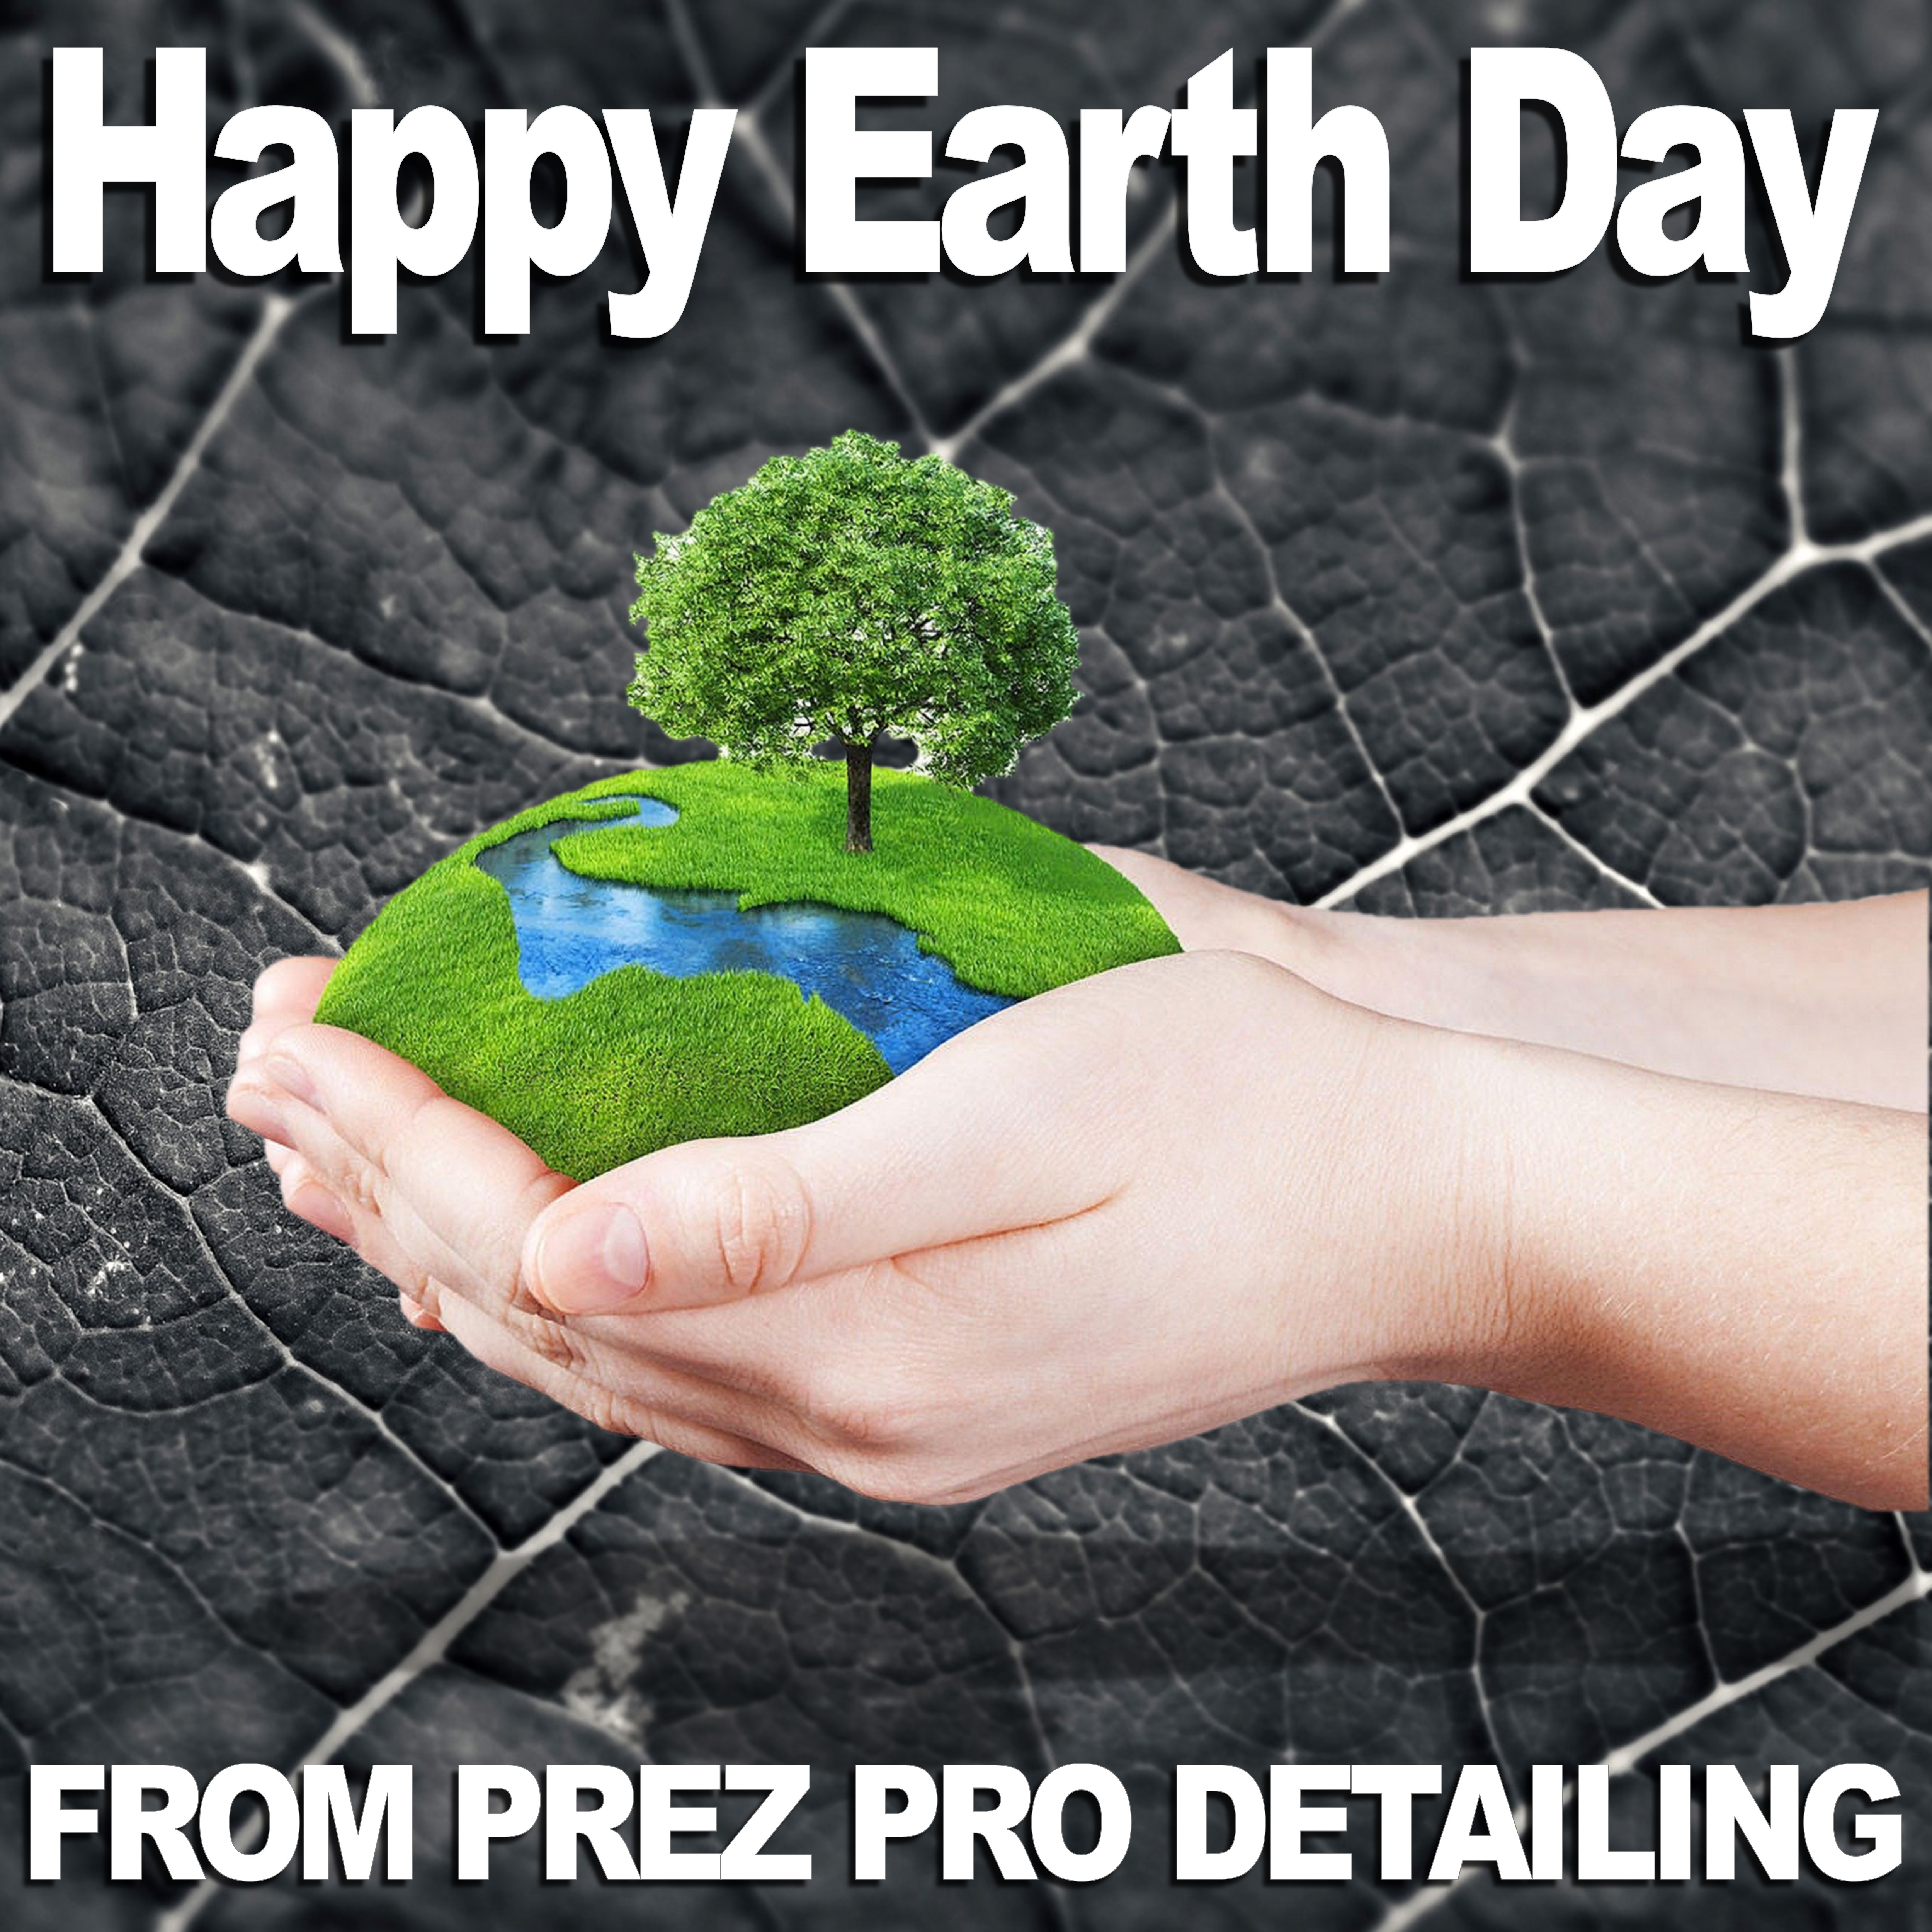 2021.04.05 - Digital Content - PPD - Earth Day